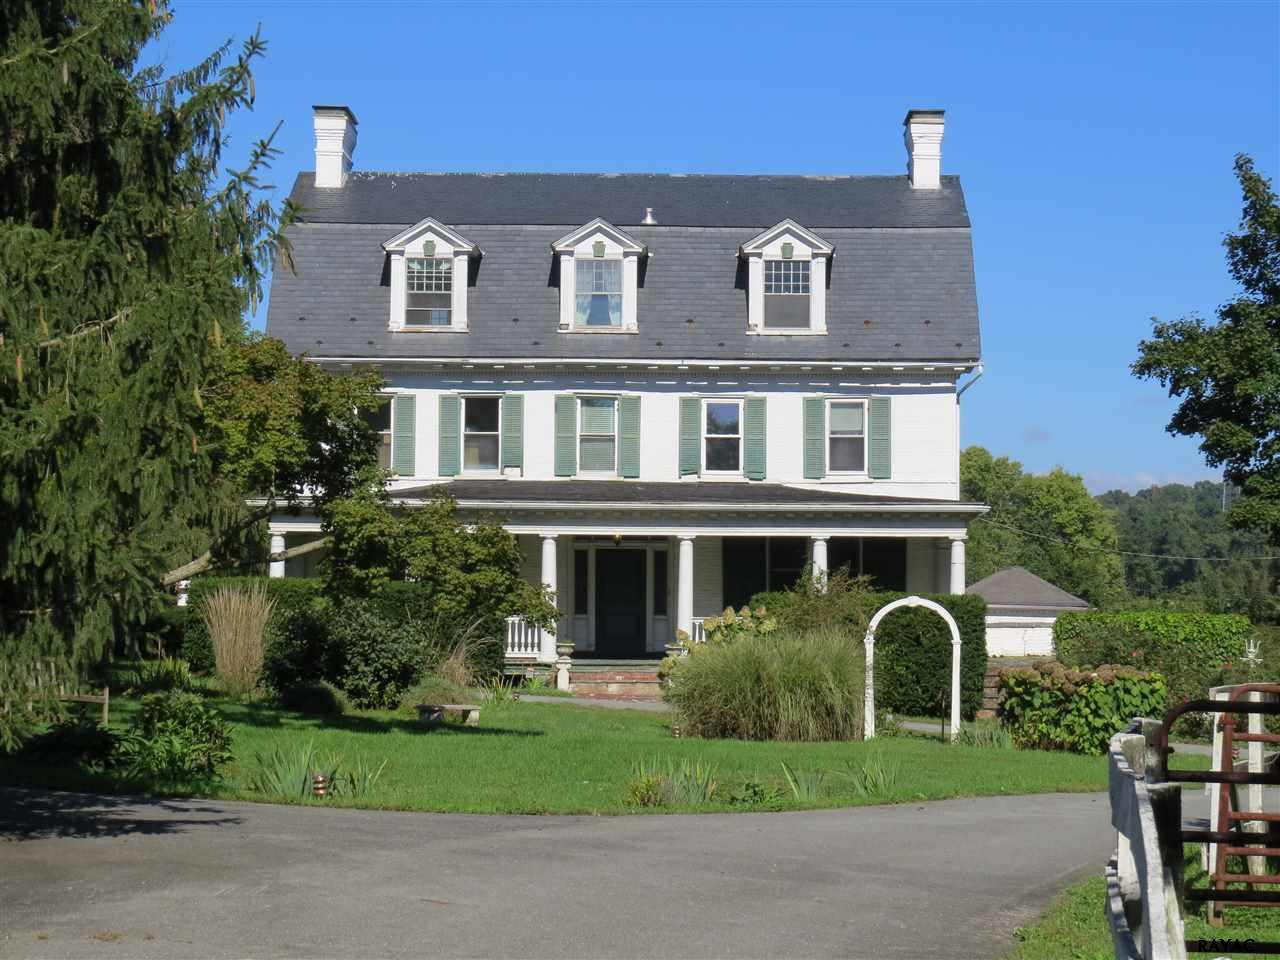 6219 Lincoln Hwy, Wrightsville, PA 17368